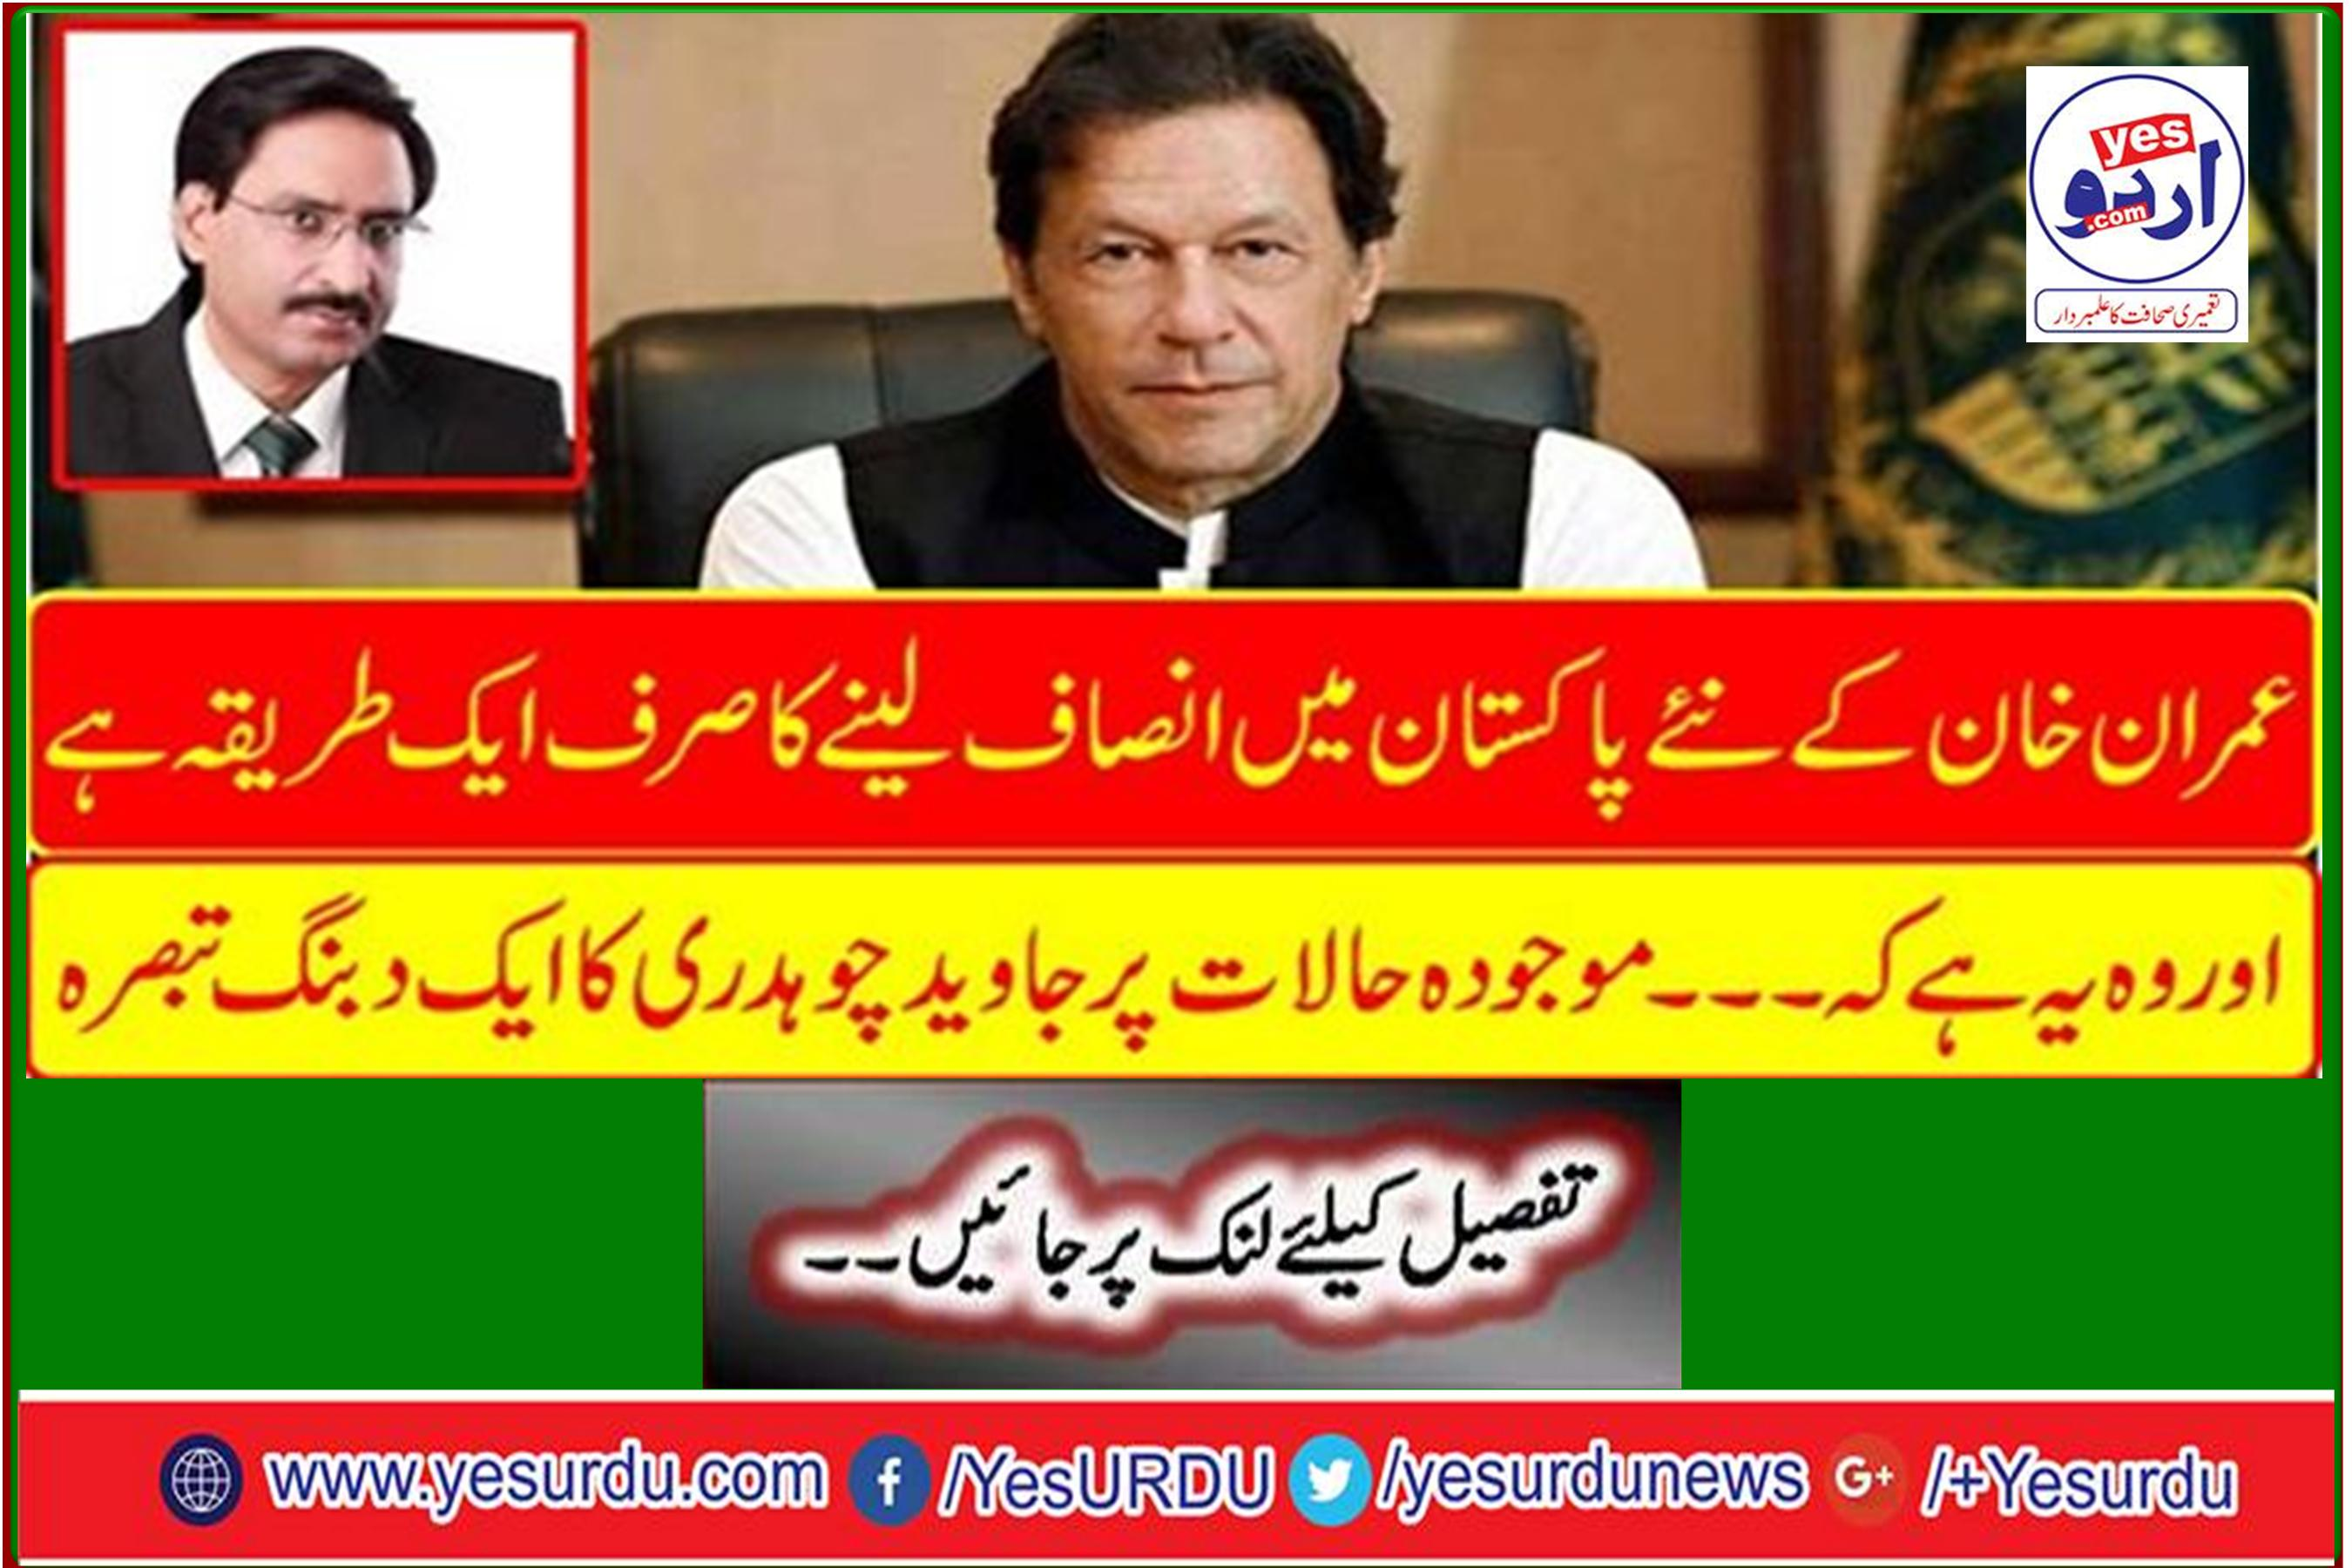 There is only one way to get justice in Imran Khan's new Pakistan and that is ... A shocking comment from Javed Chaudhry on the current situation